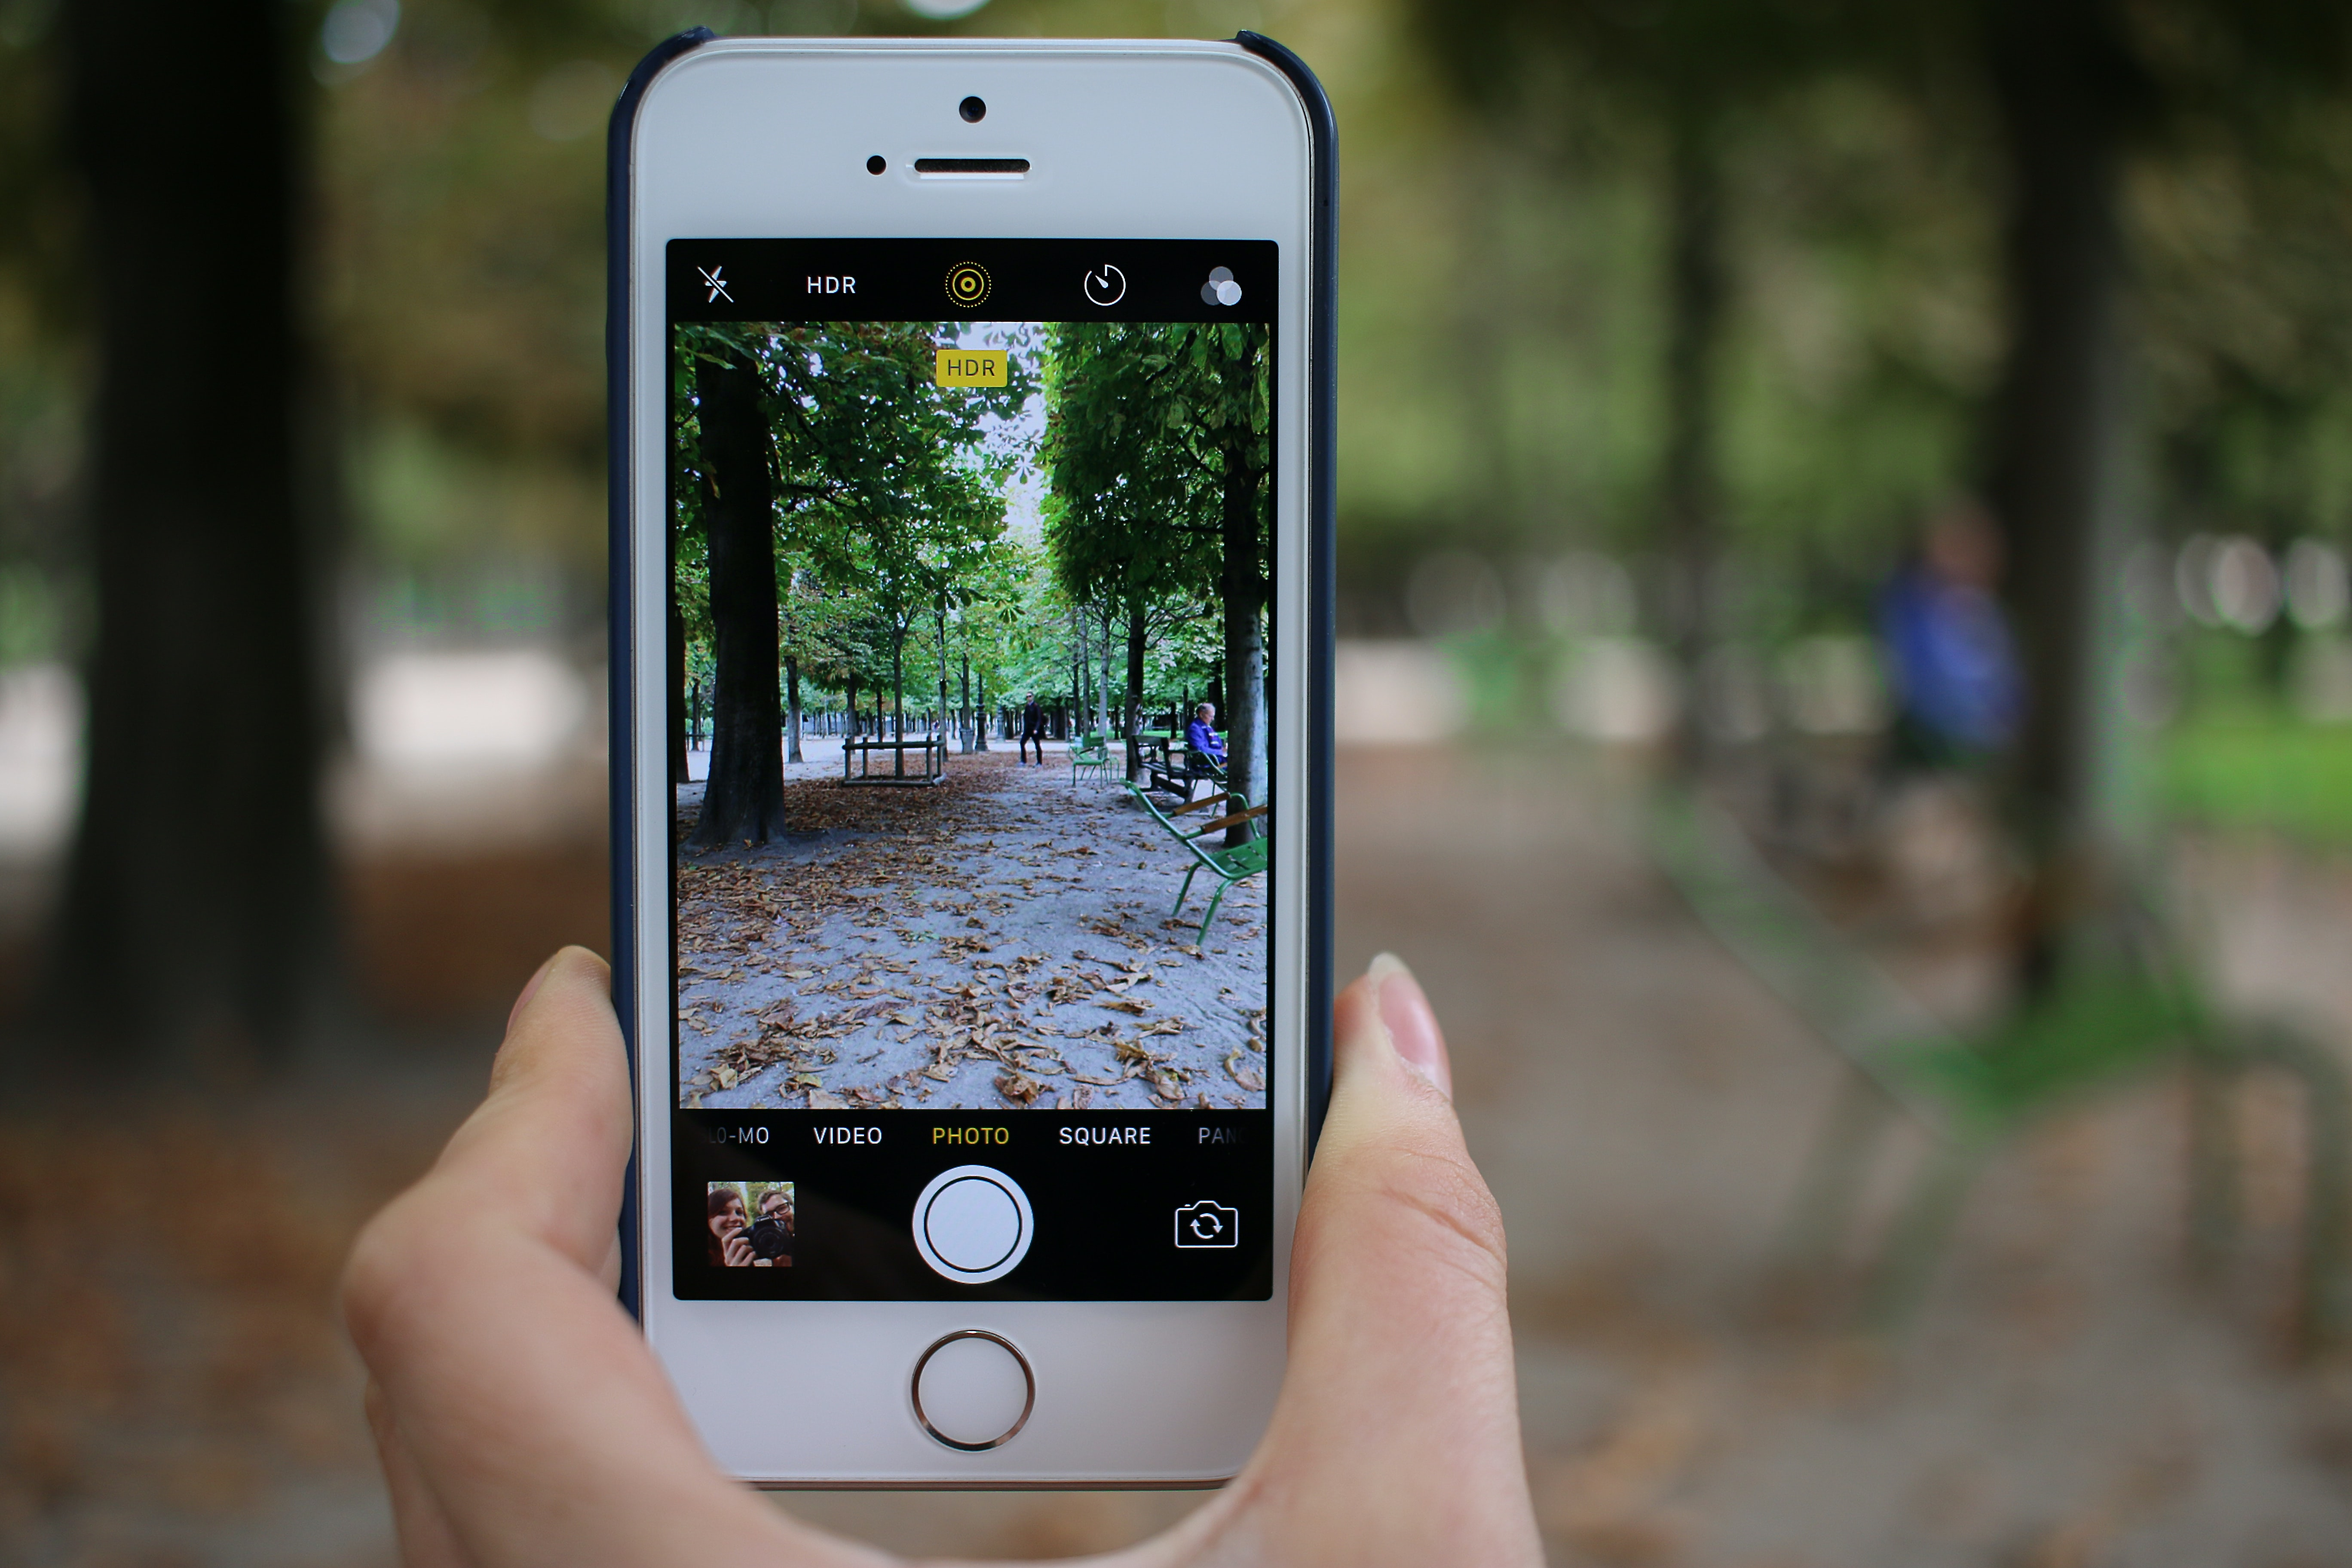 A woman's hand taking a photo of a park while holding an iPhone mobile smartphone.